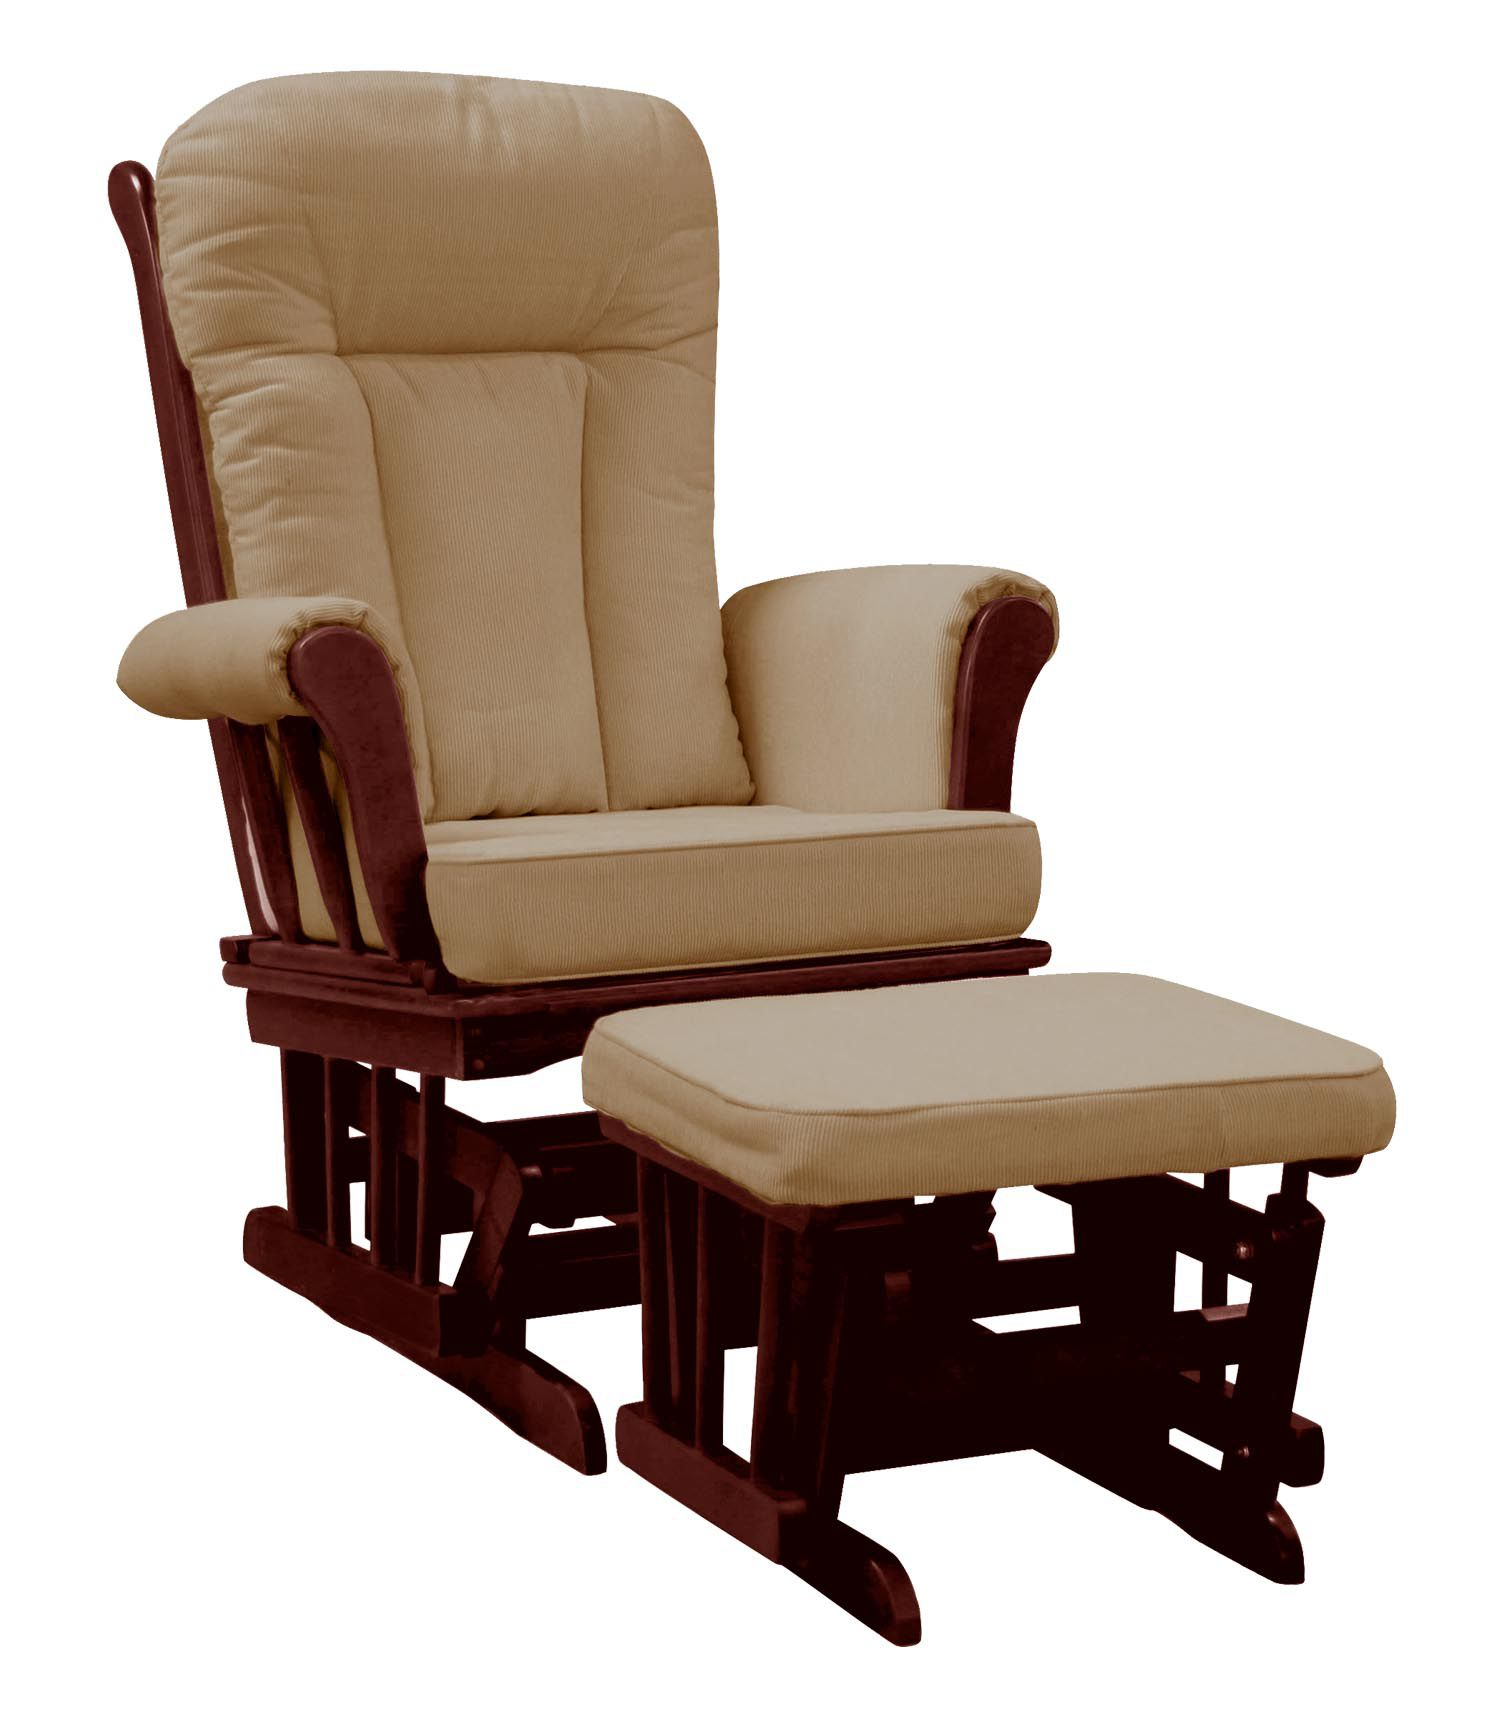 Dream On Me Elysium Glider Rocker and matching Ottoman with Espresso Glider with Beige Cushion